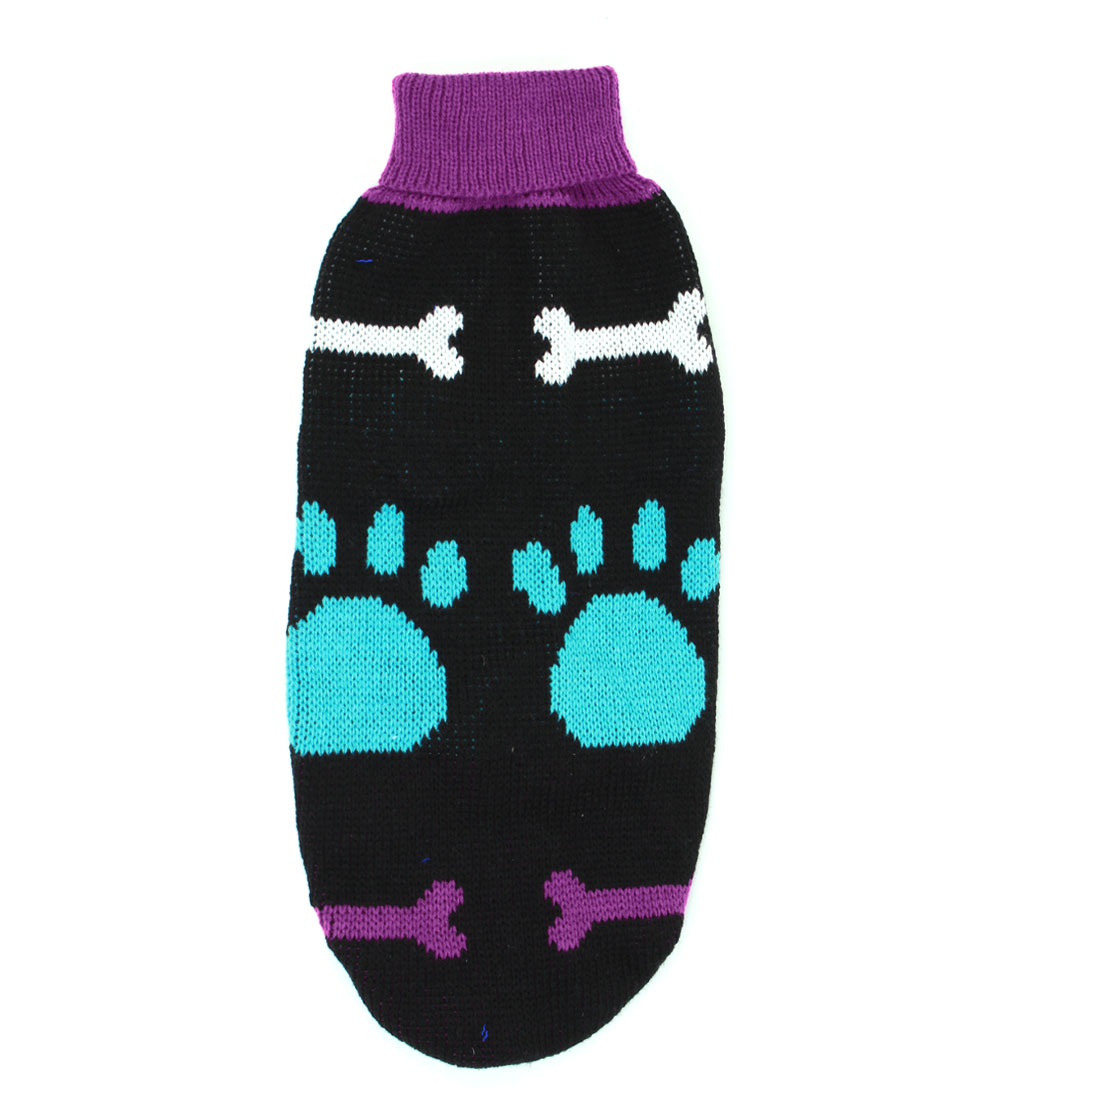 Blue Black Fuchsia Pawprint Print Pet Doggy Turtleneck Sweater Apparel Size M